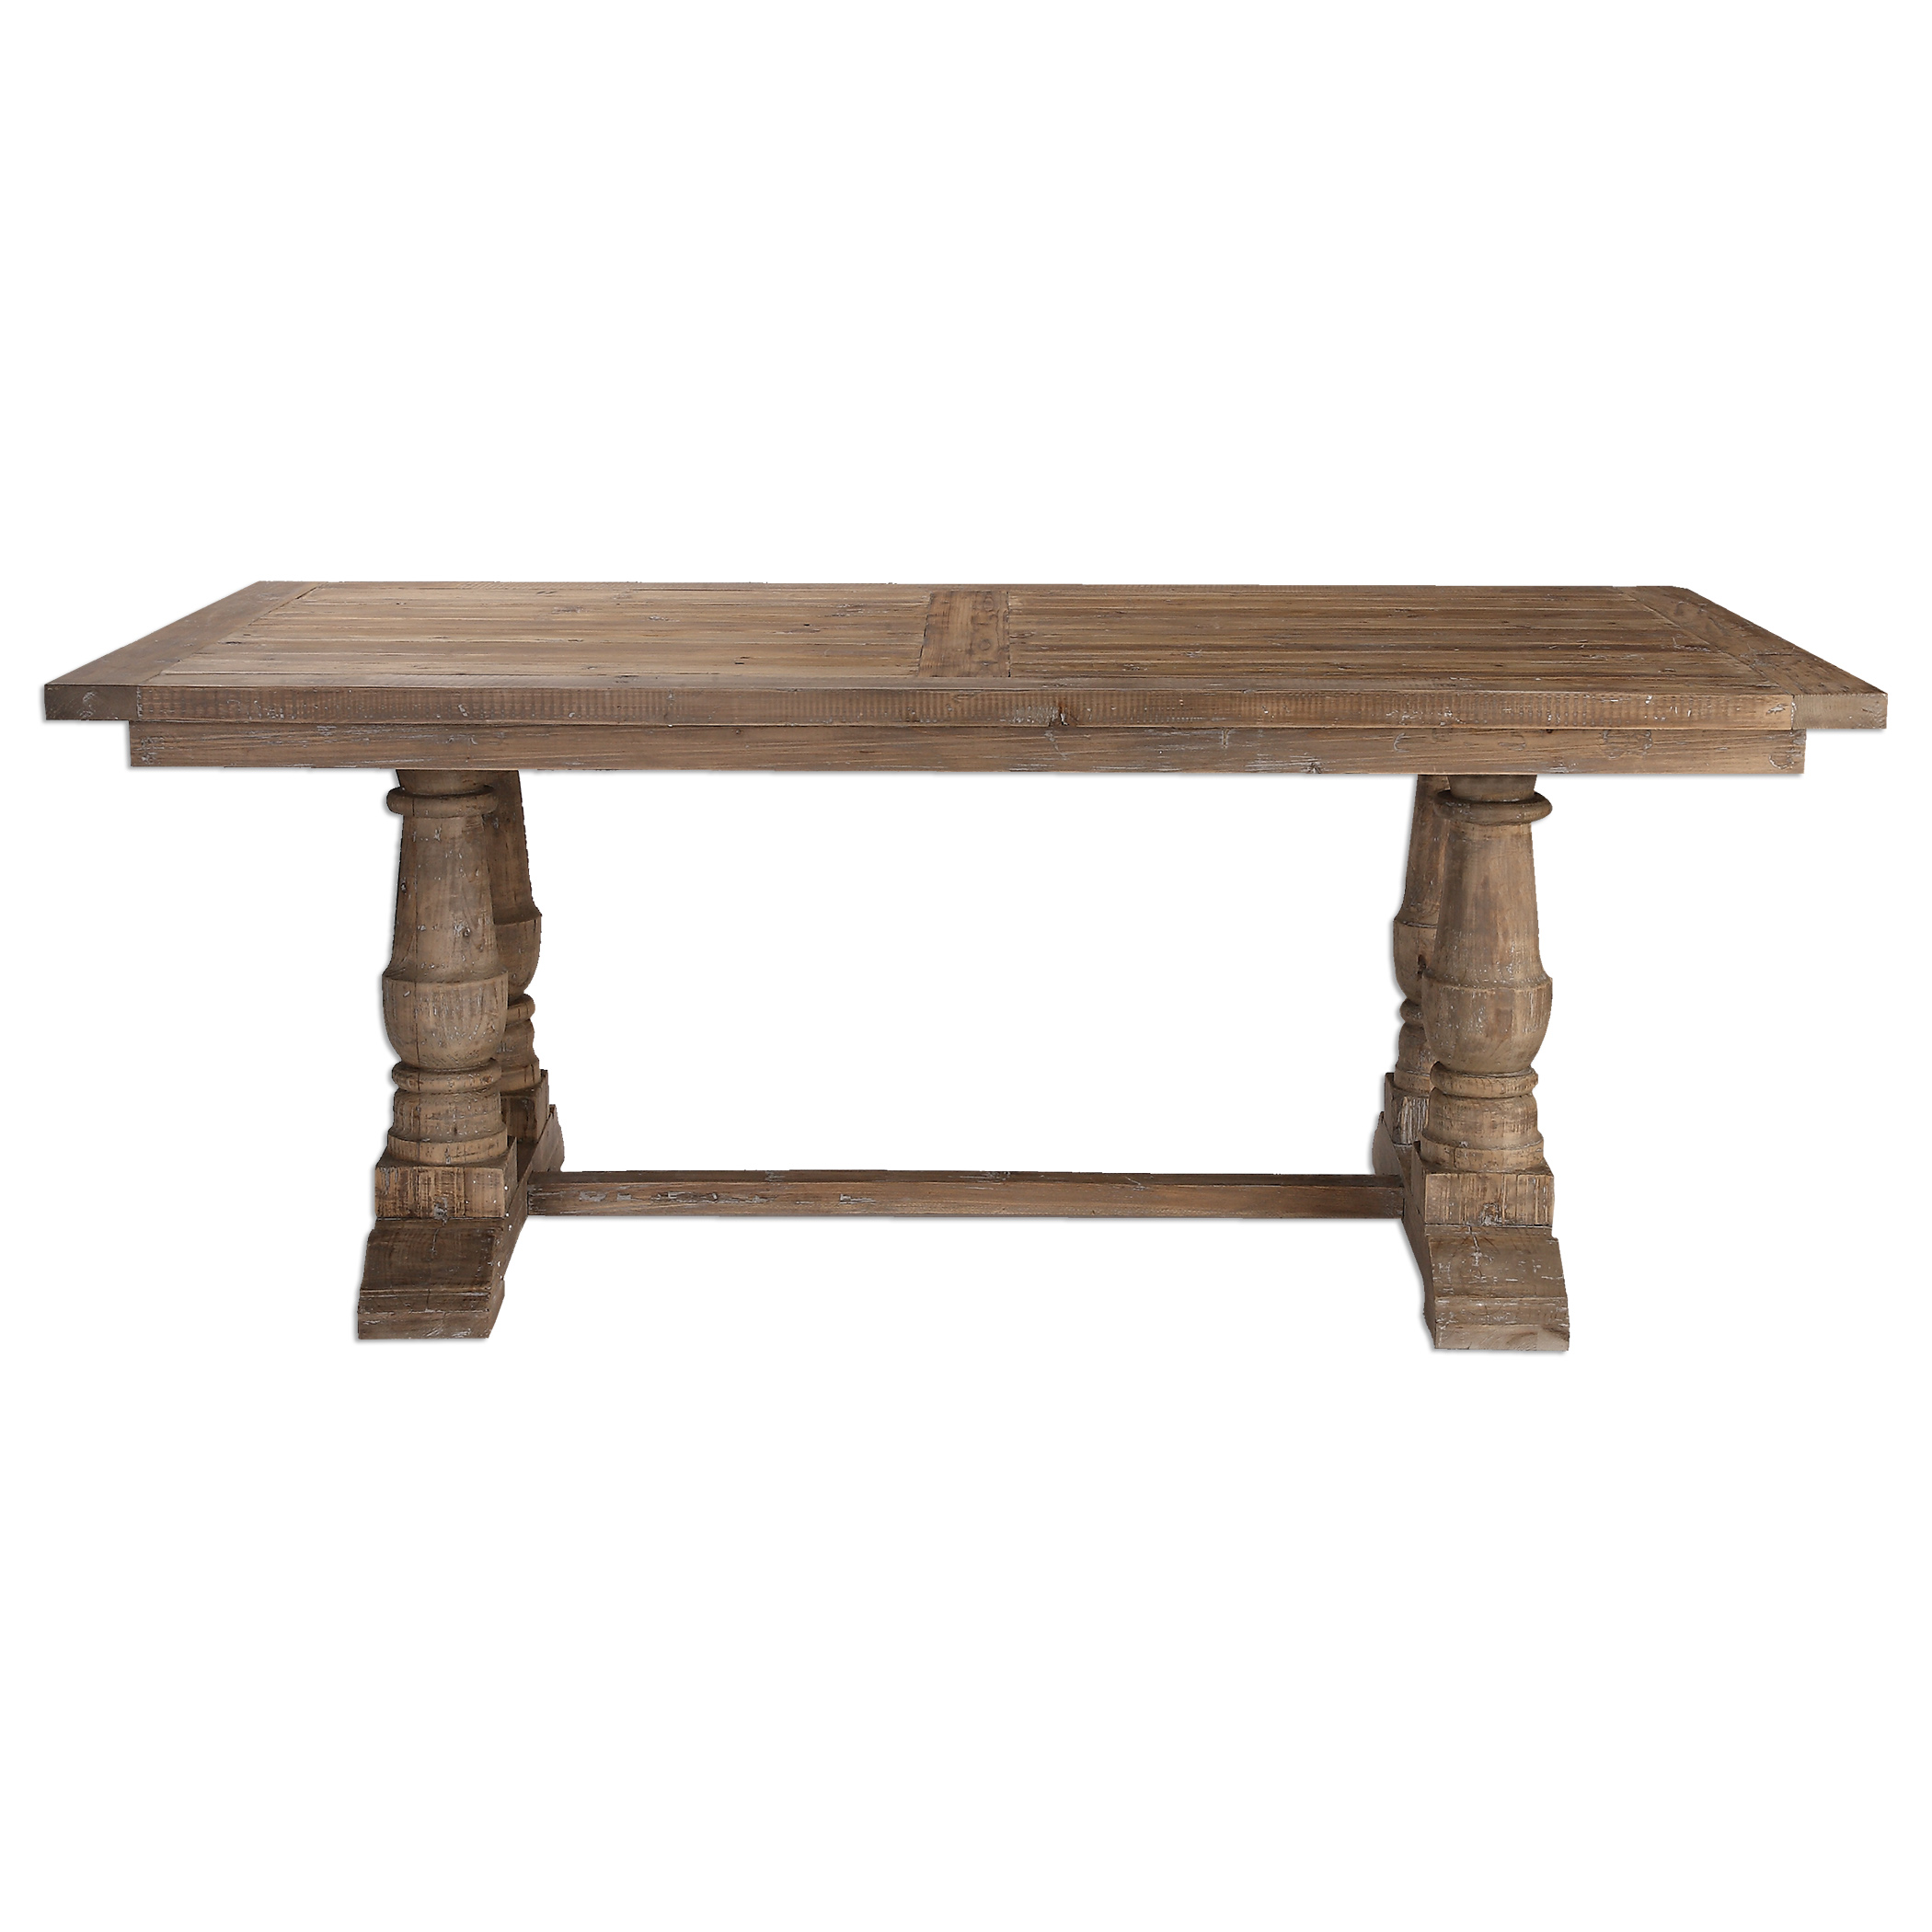 Accent Furniture Stratford  Salvaged Wood Dining Table by Uttermost at Furniture Superstore - Rochester, MN